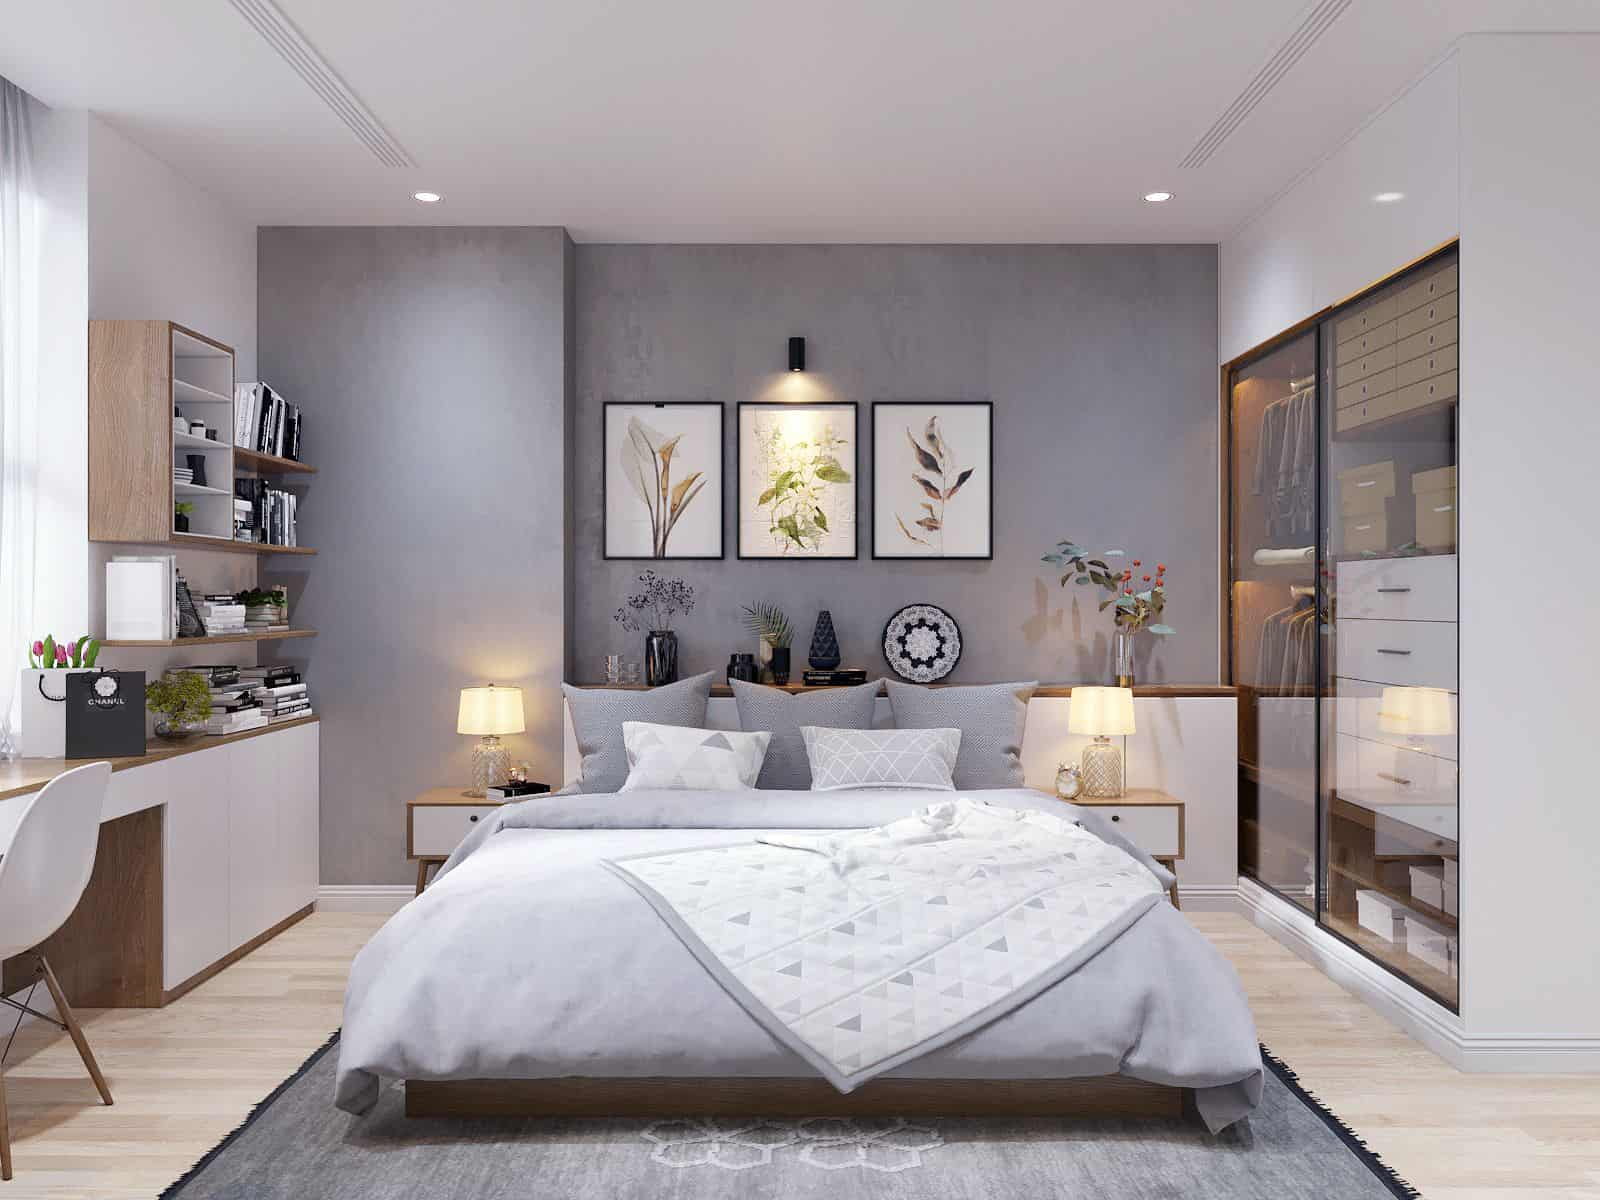 Bedroom Trends 2021 - Top 12 Efficient Ideas to Refresh ...